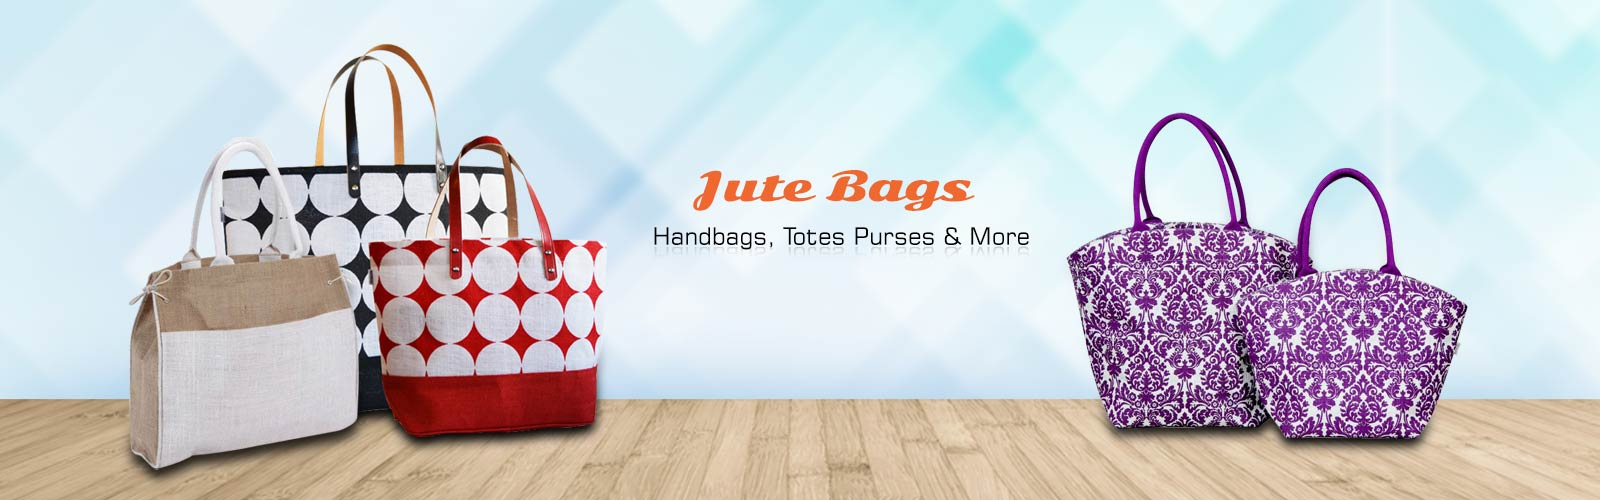 Wholesale Jute Bag Supplier in Ireland